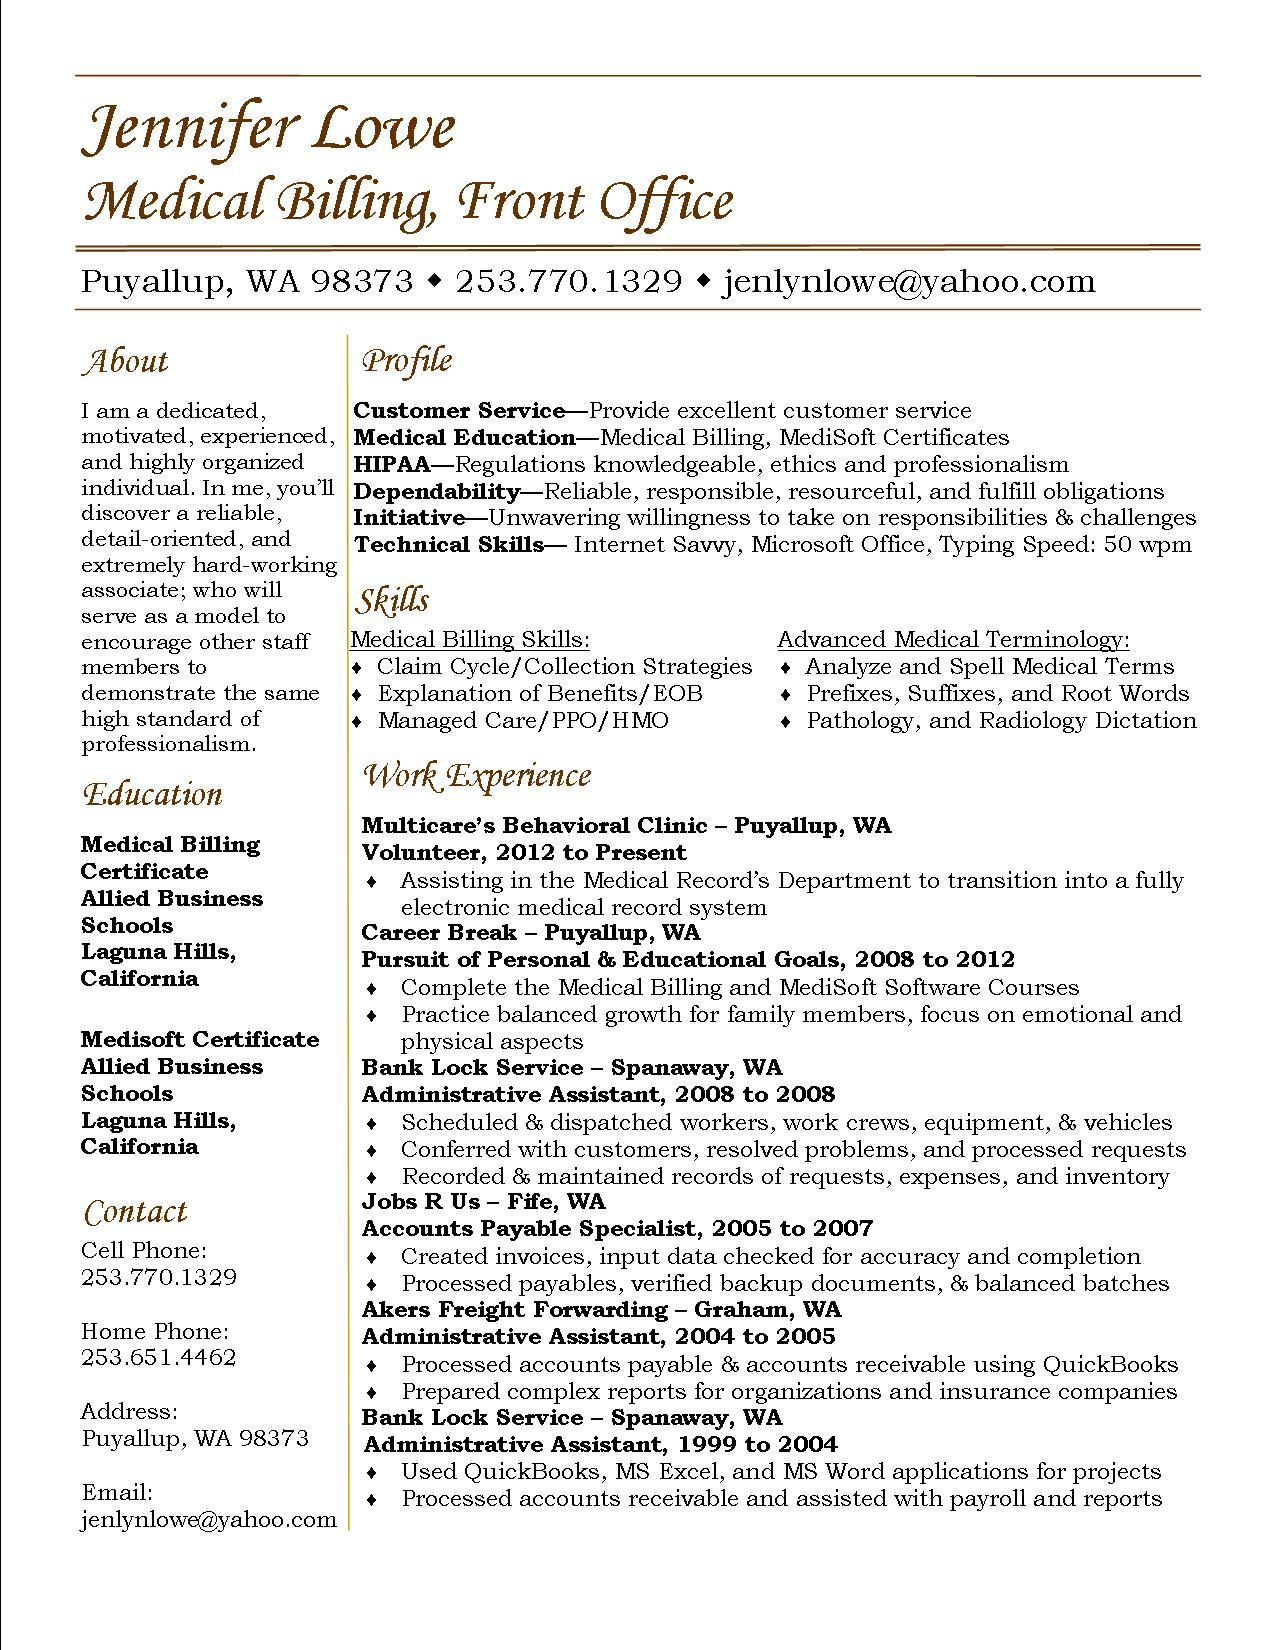 Use This As A Sample Resume  Medical Billing Resume Career